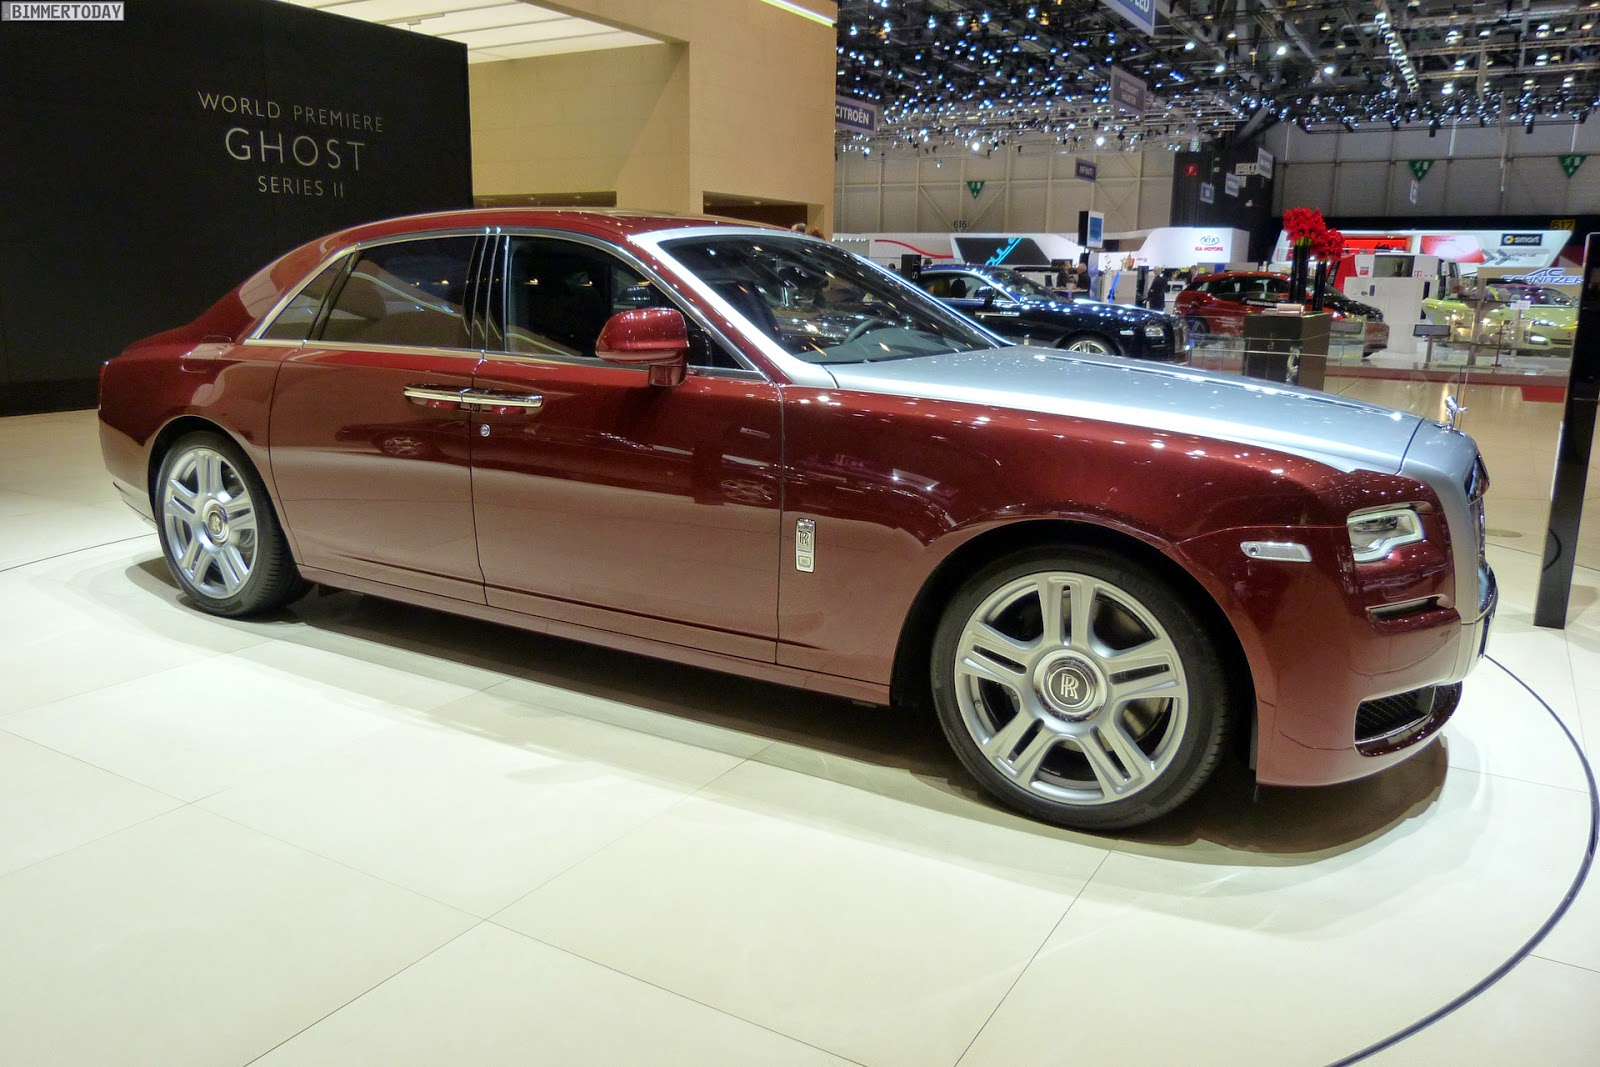 Roll Royce Ghost Series II